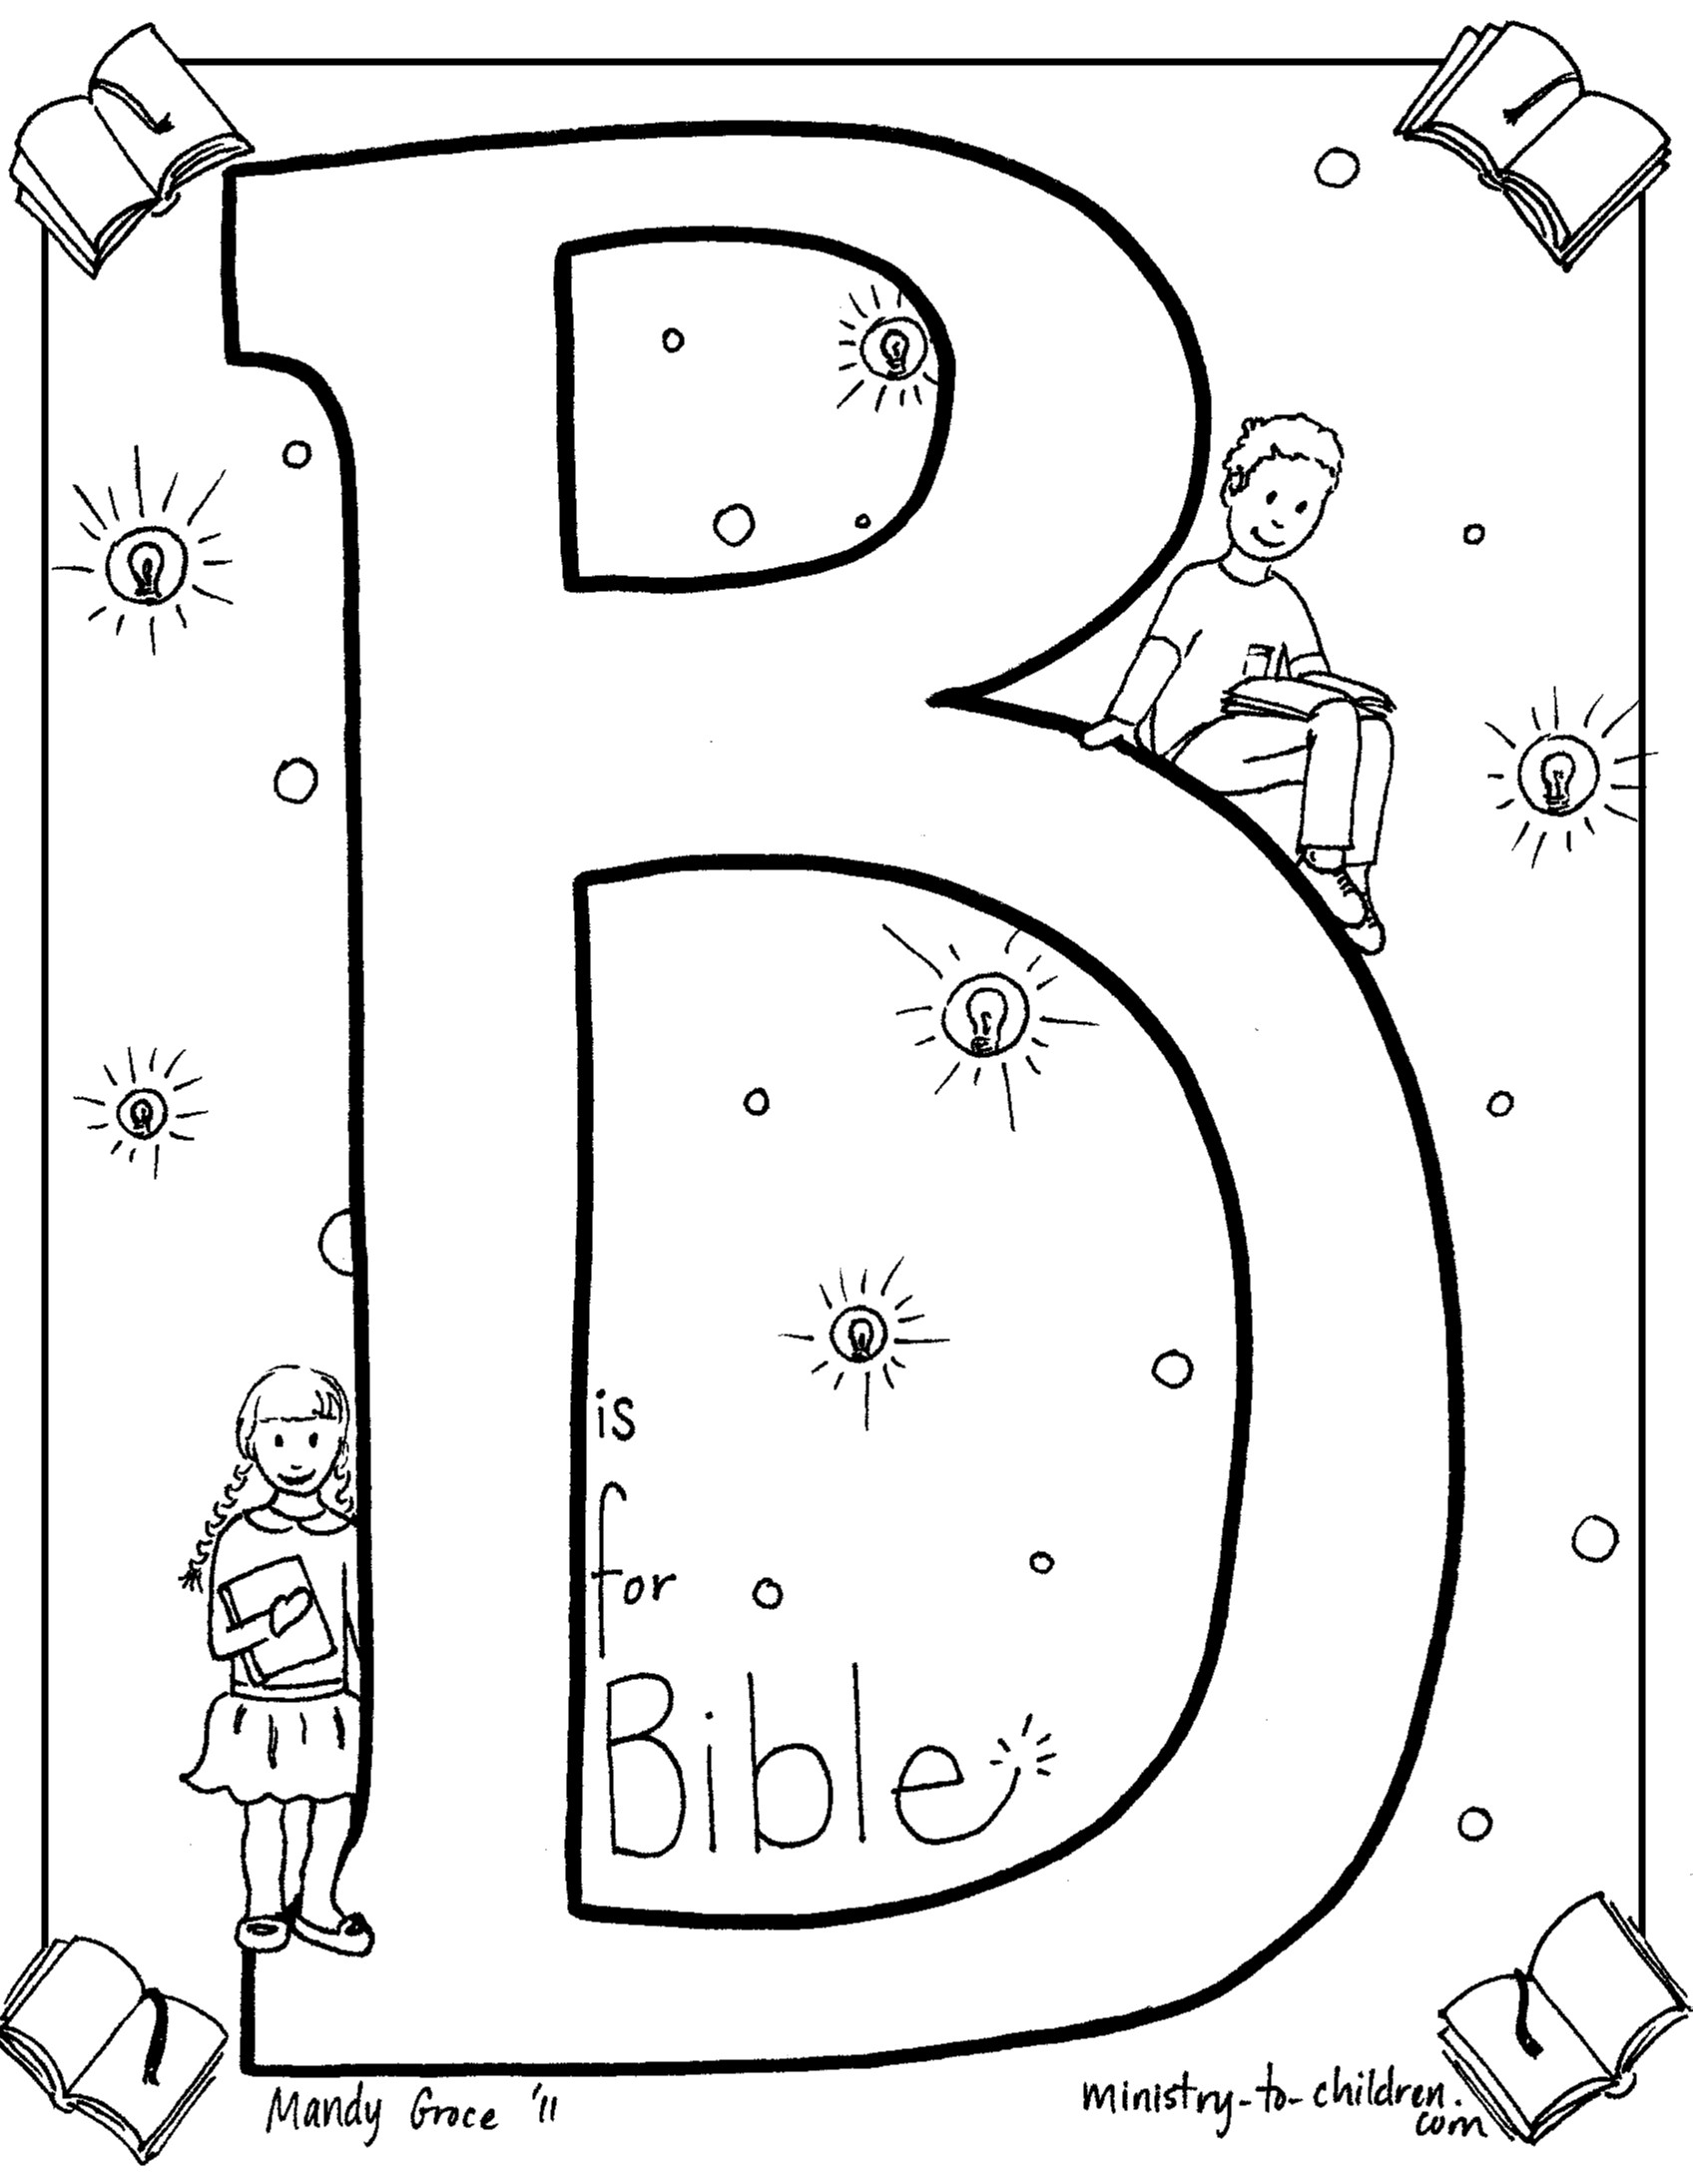 biblical coloring pages bible coloring pages kidsuki pages biblical coloring